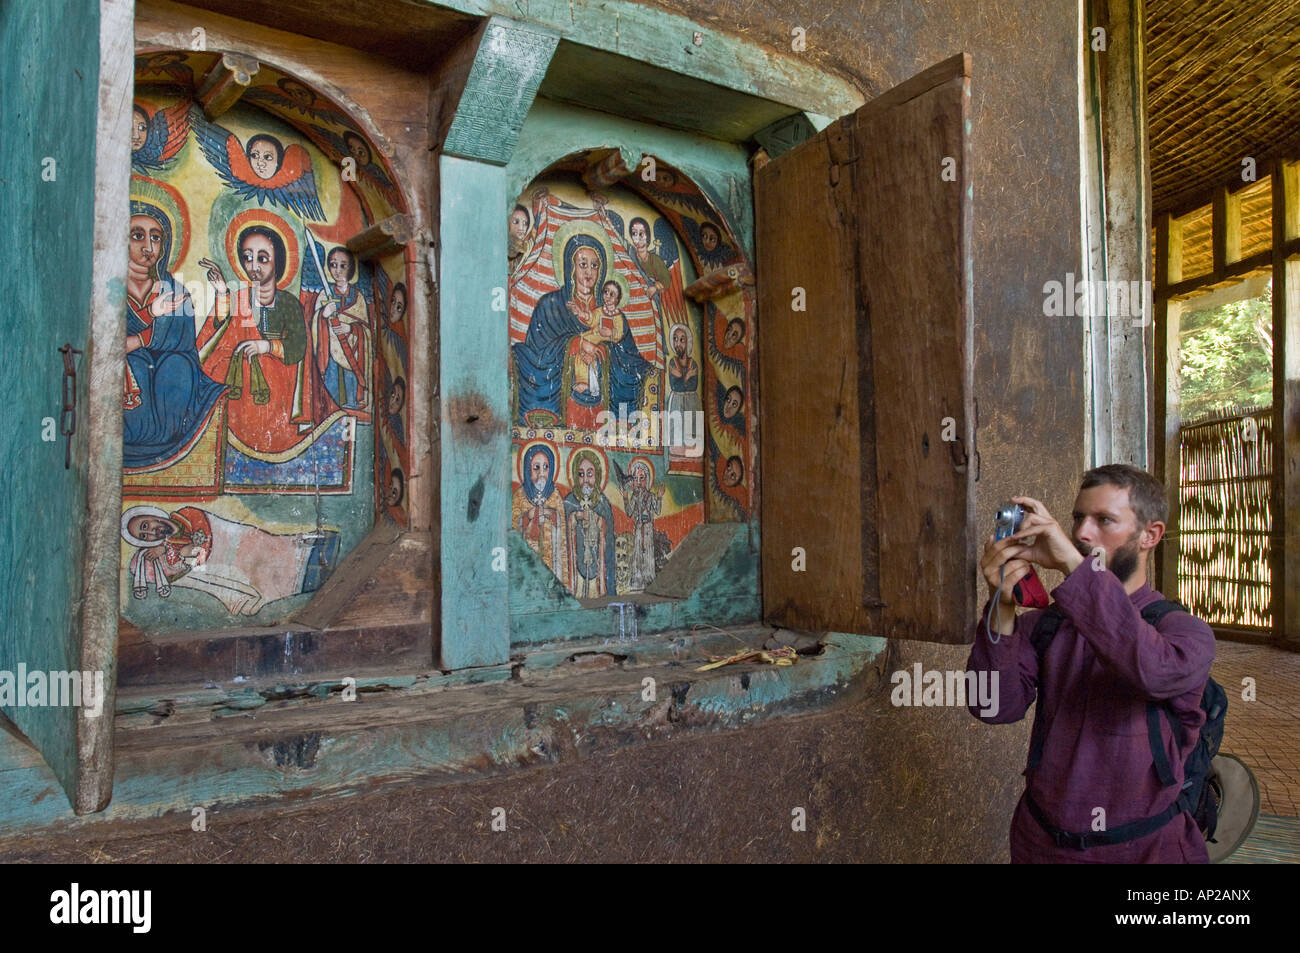 A tourist taking photographs inside the Ura - Kidane Mihret Monastery which can be visited by taking a boat from - Stock Image